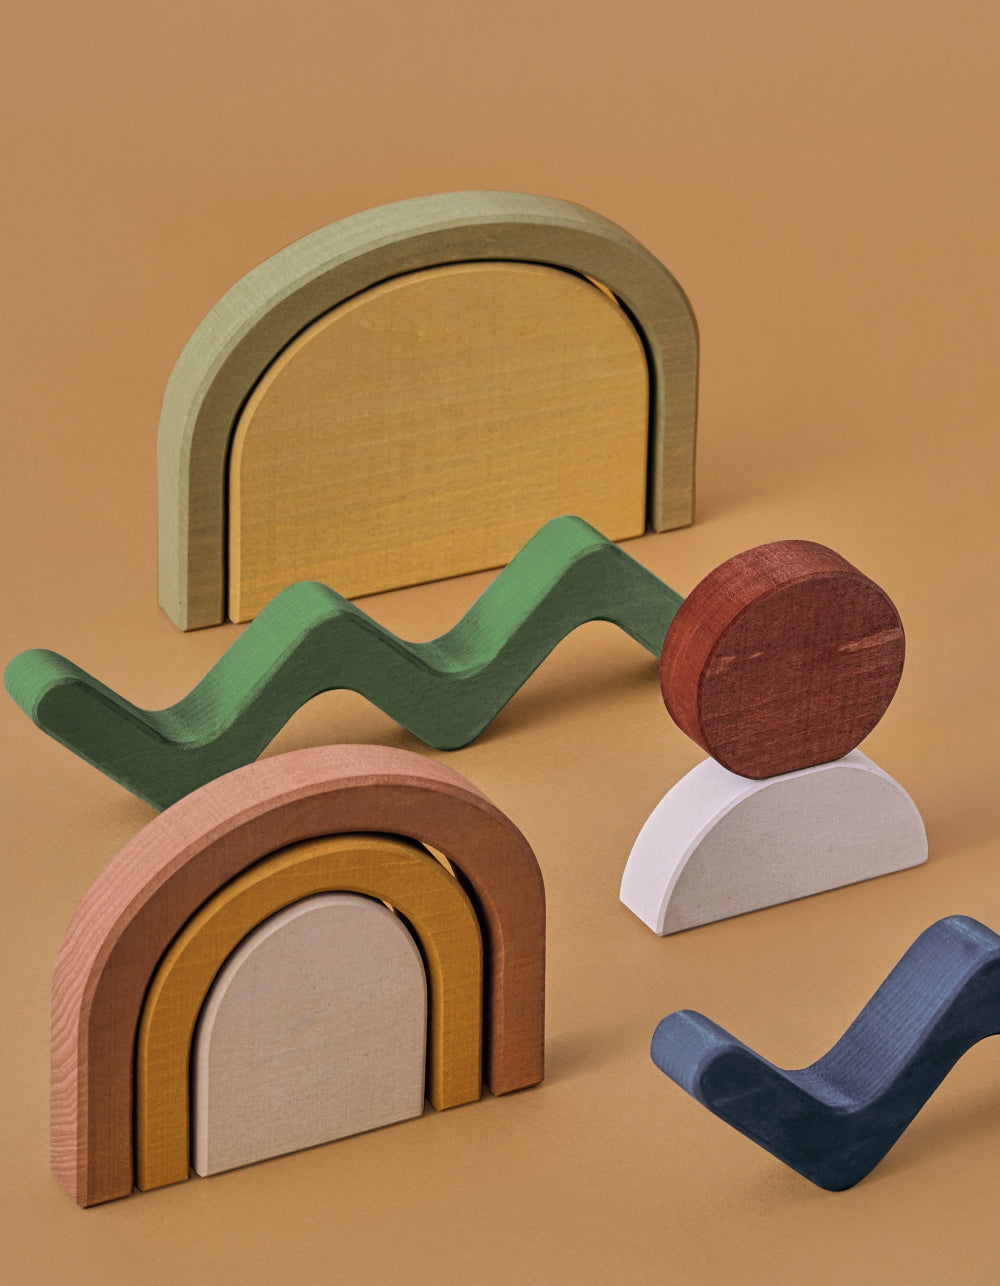 Raduge Grez shape building blocks